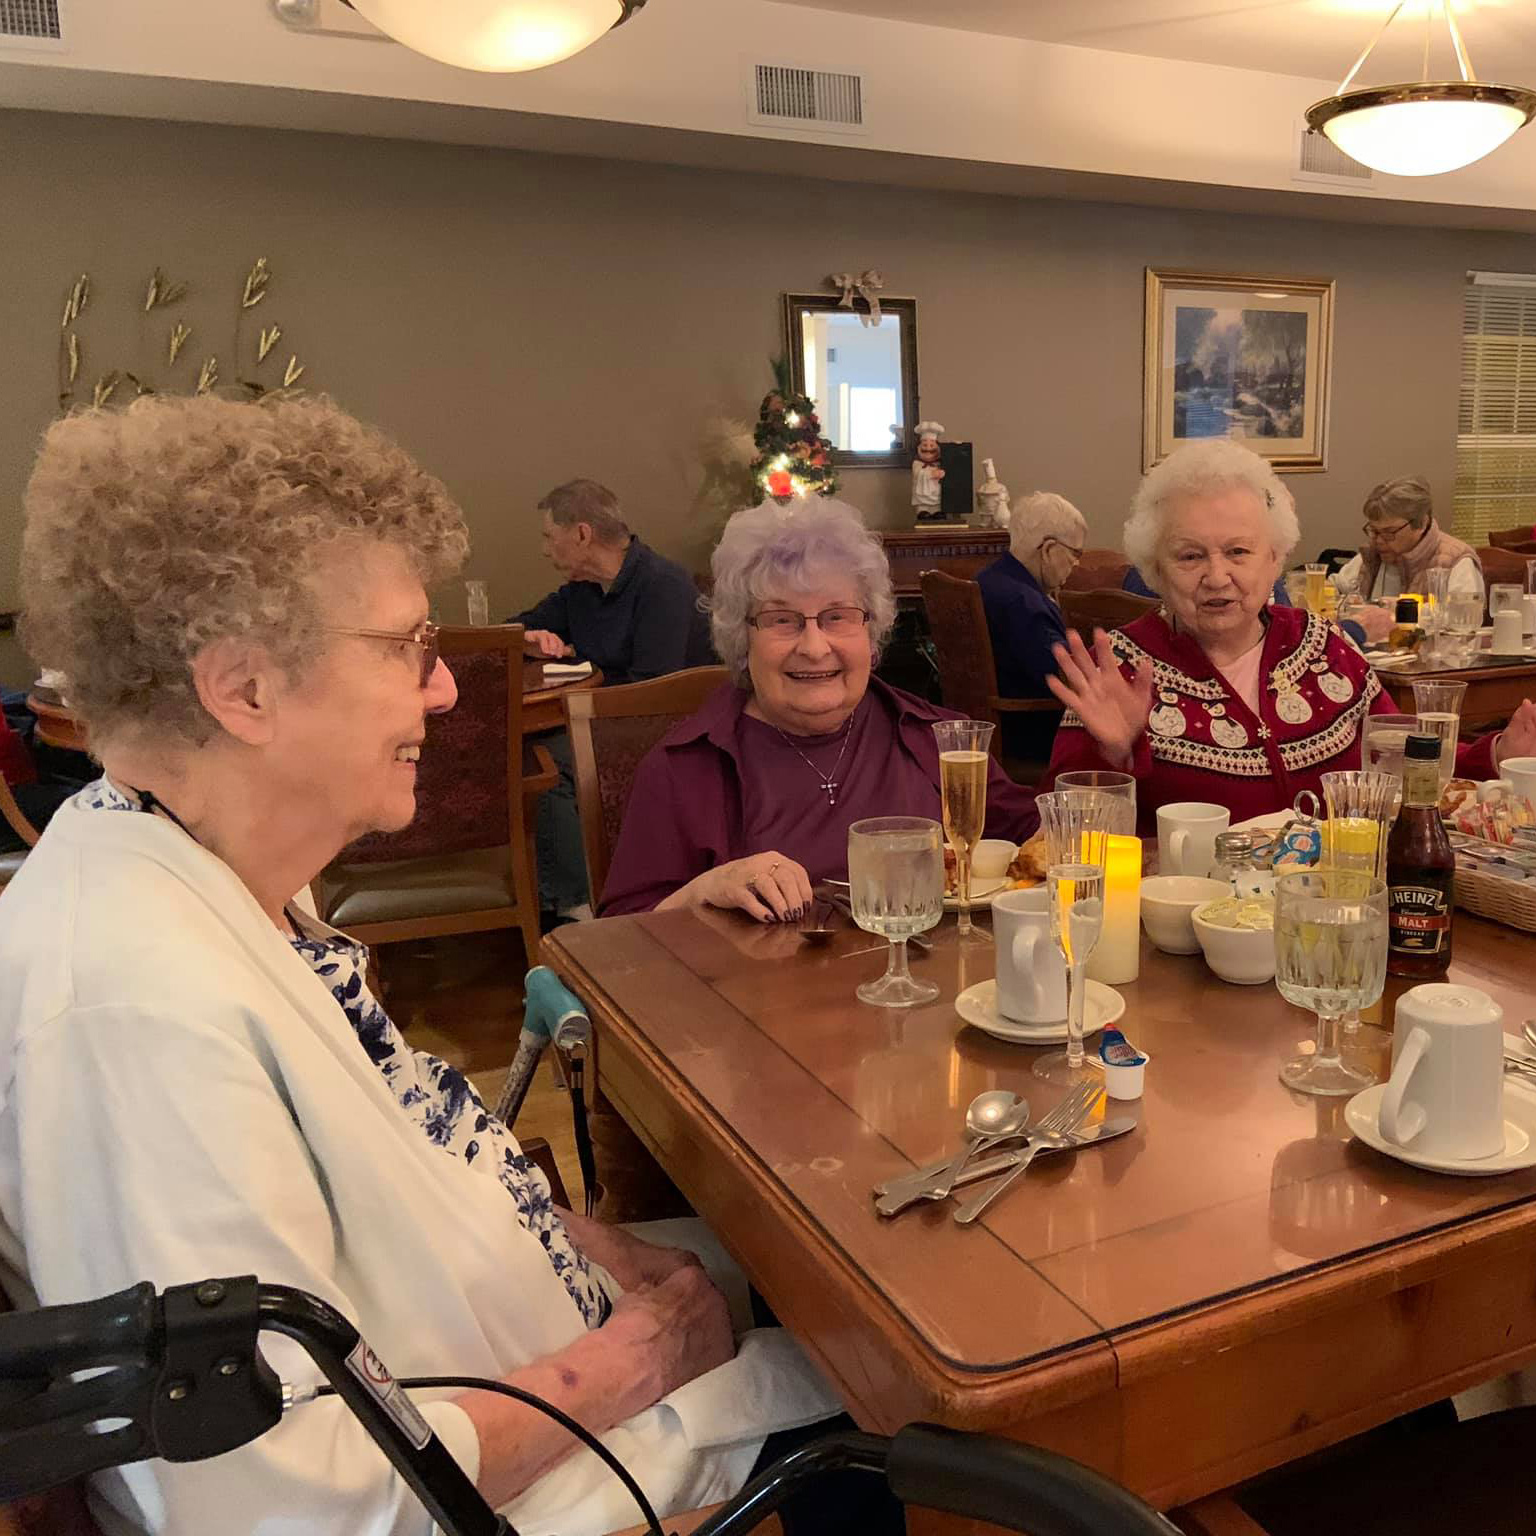 Three beautiful residents share a meal at Colonial Inn Olympia